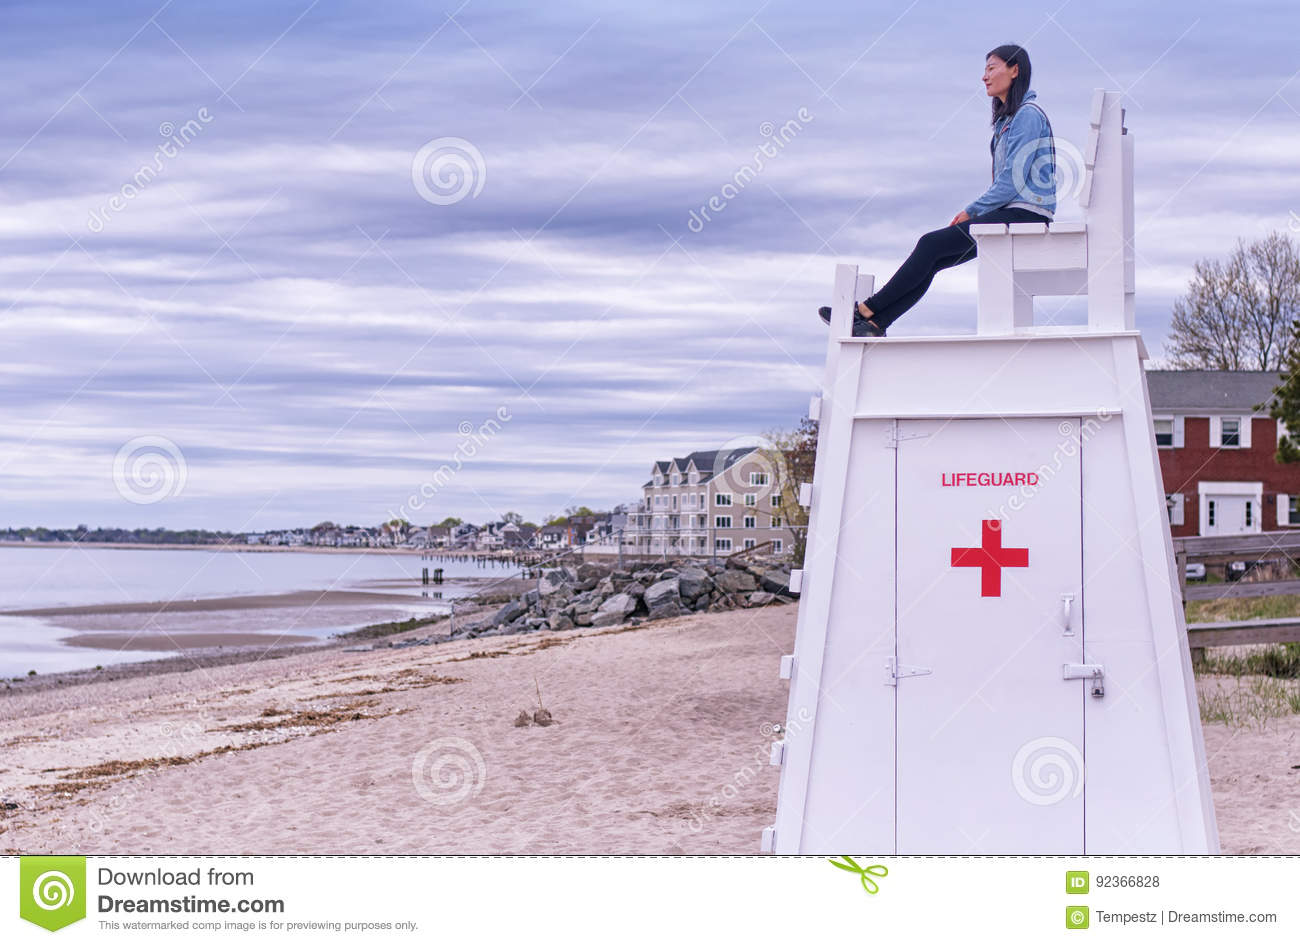 Chinese woman on lifeguard chair